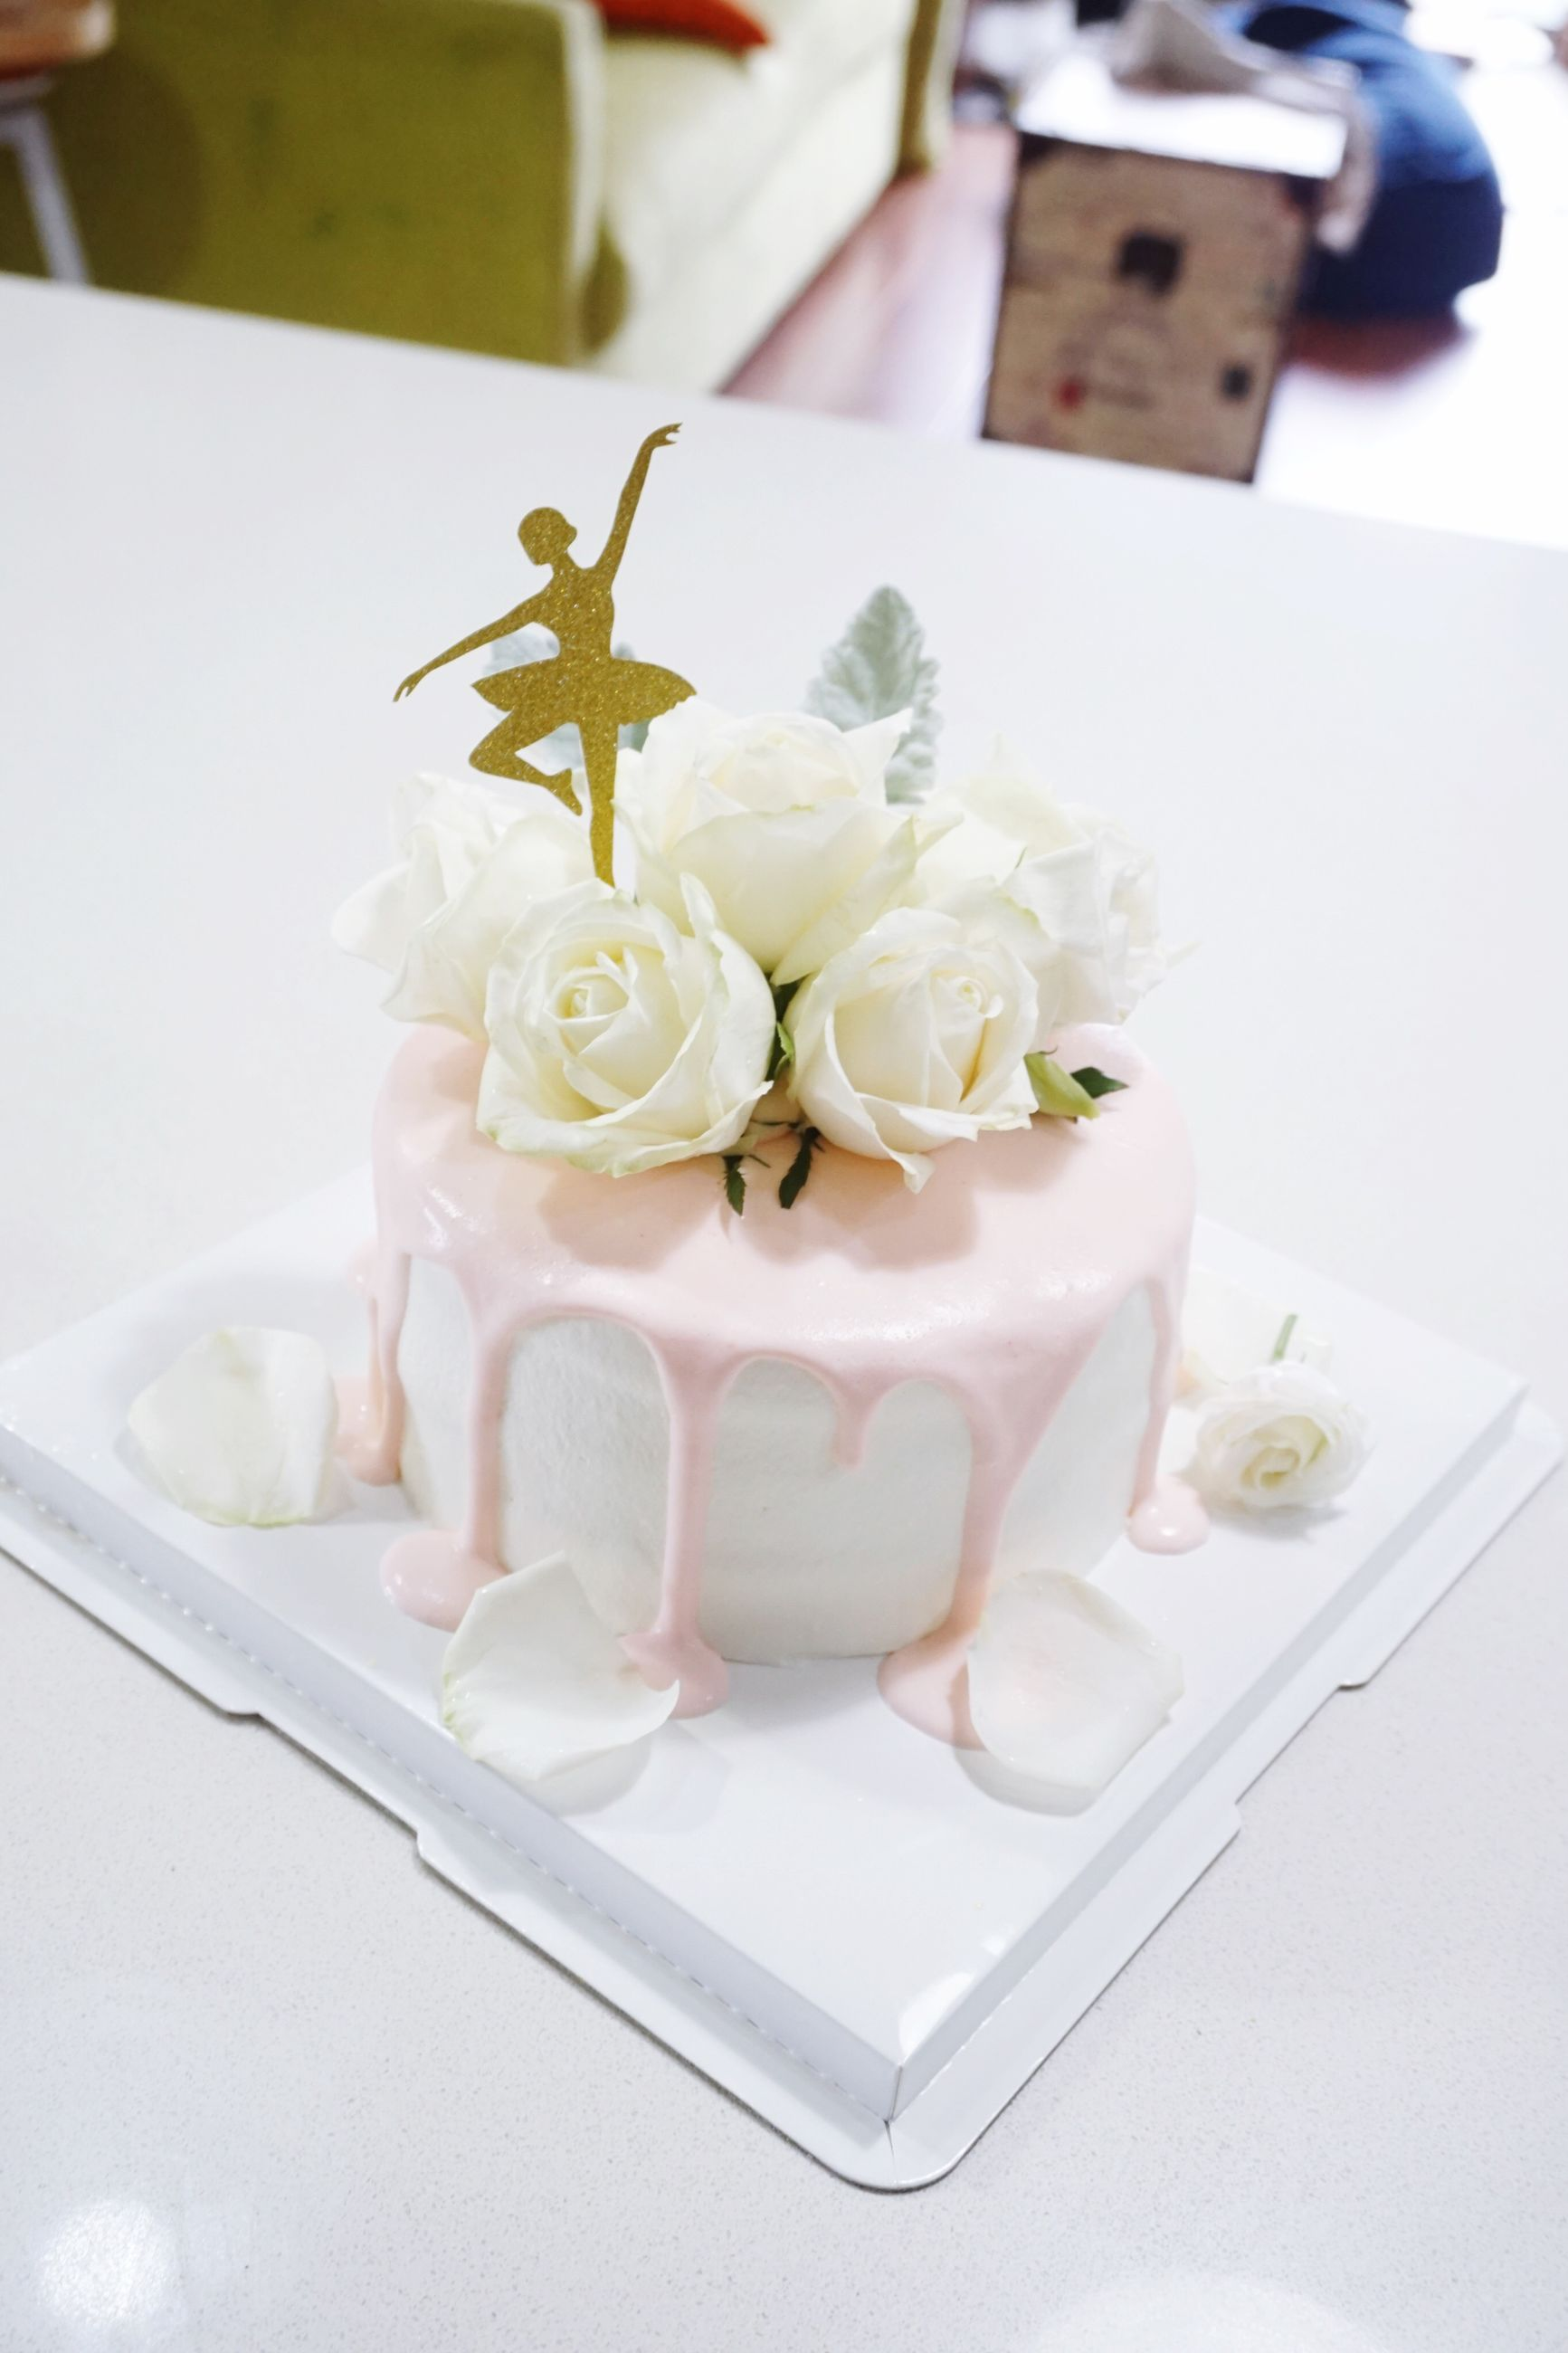 wedding, food and drink, celebration, life events, table, wedding cake, cake, food, indoors, no people, indulgence, freshness, close-up, plate, flower, sweet food, ribbon - sewing item, day, ready-to-eat, flower head